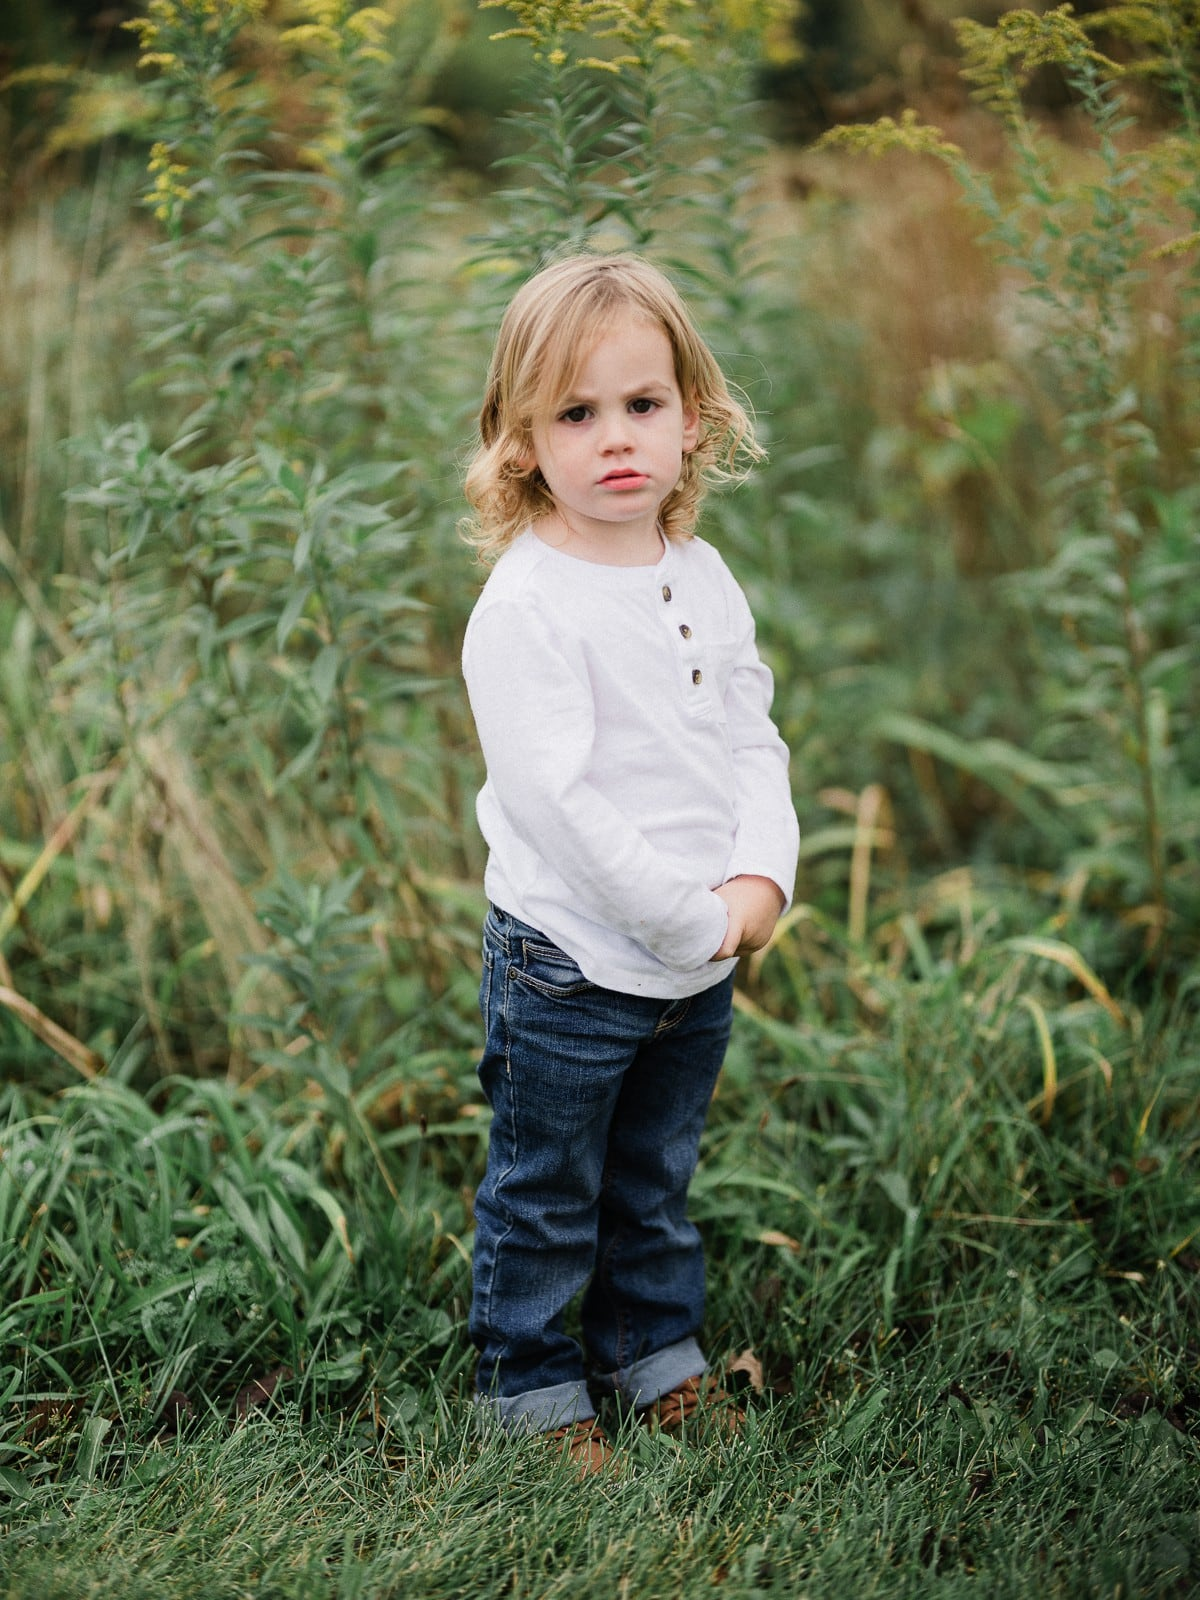 Childrens Photography Sample Gallery - Child Portraits